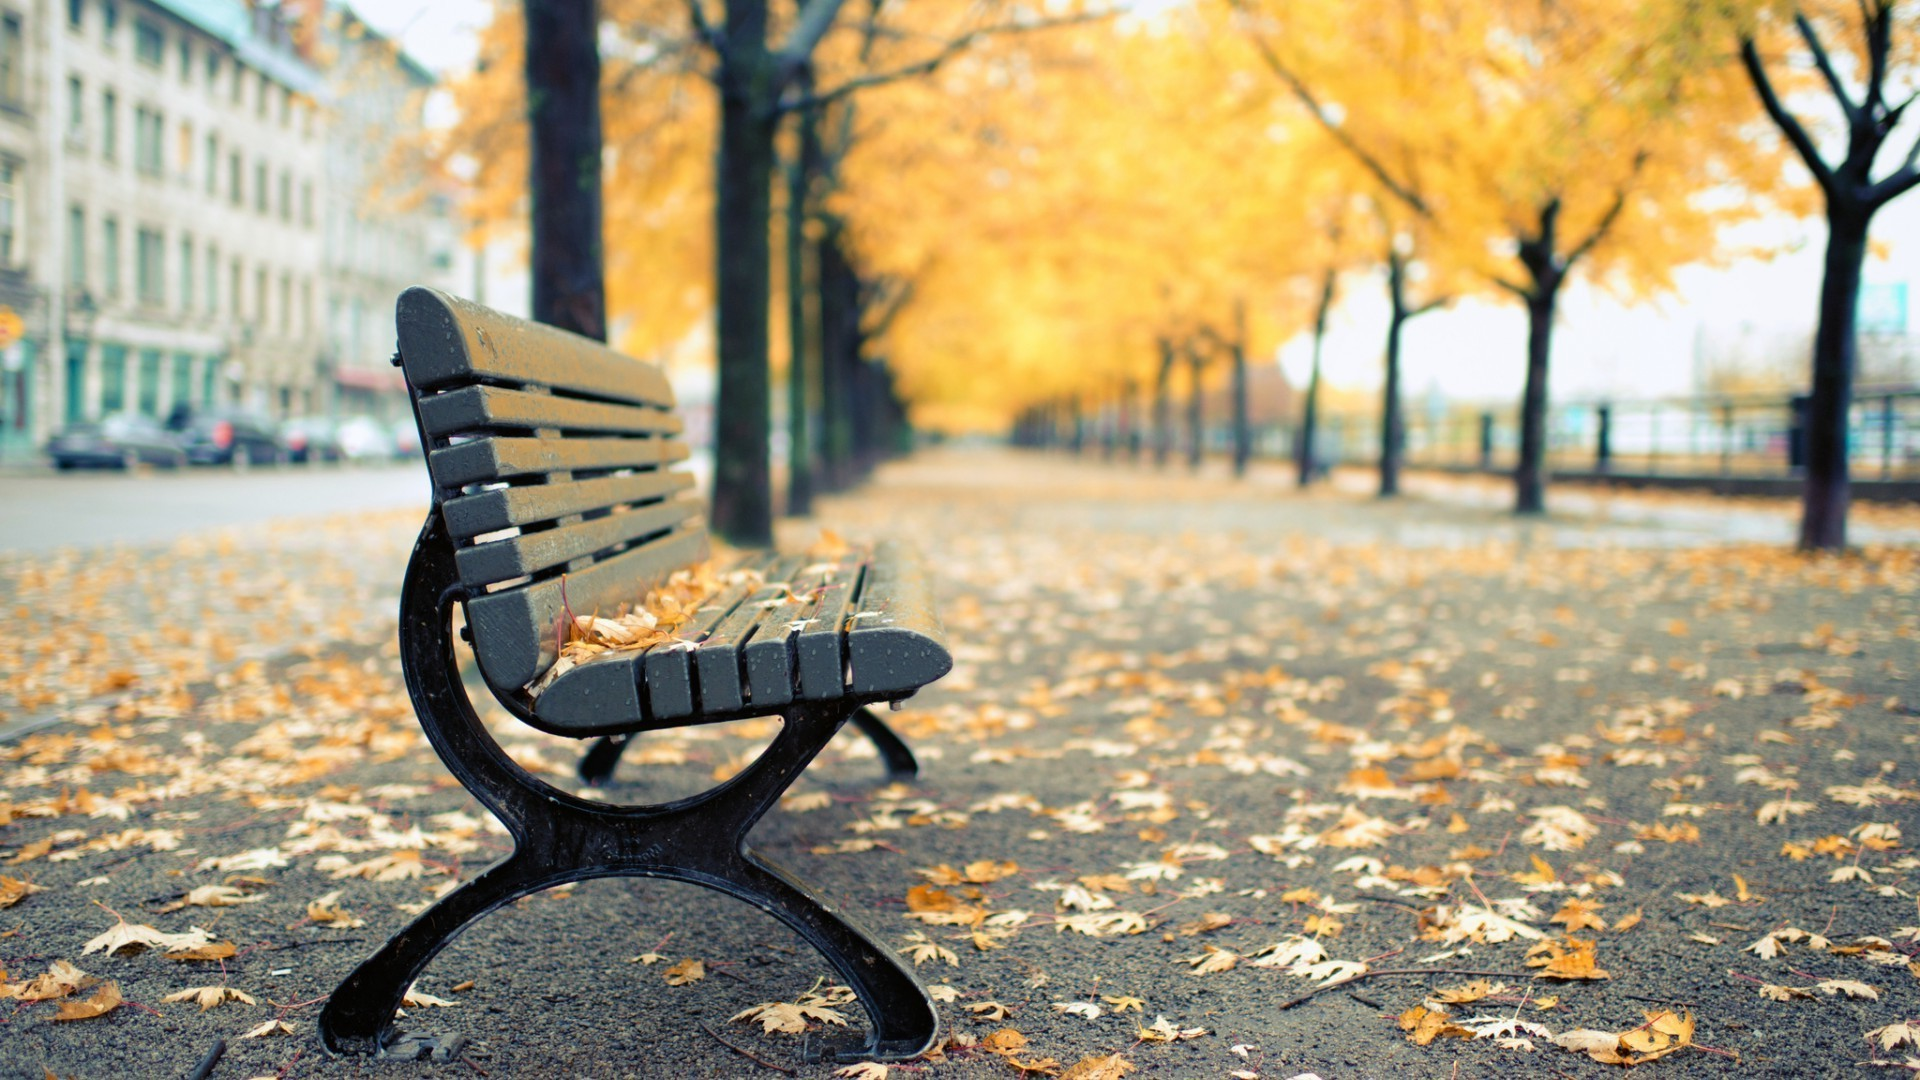 Bench, trees, fallen leaves